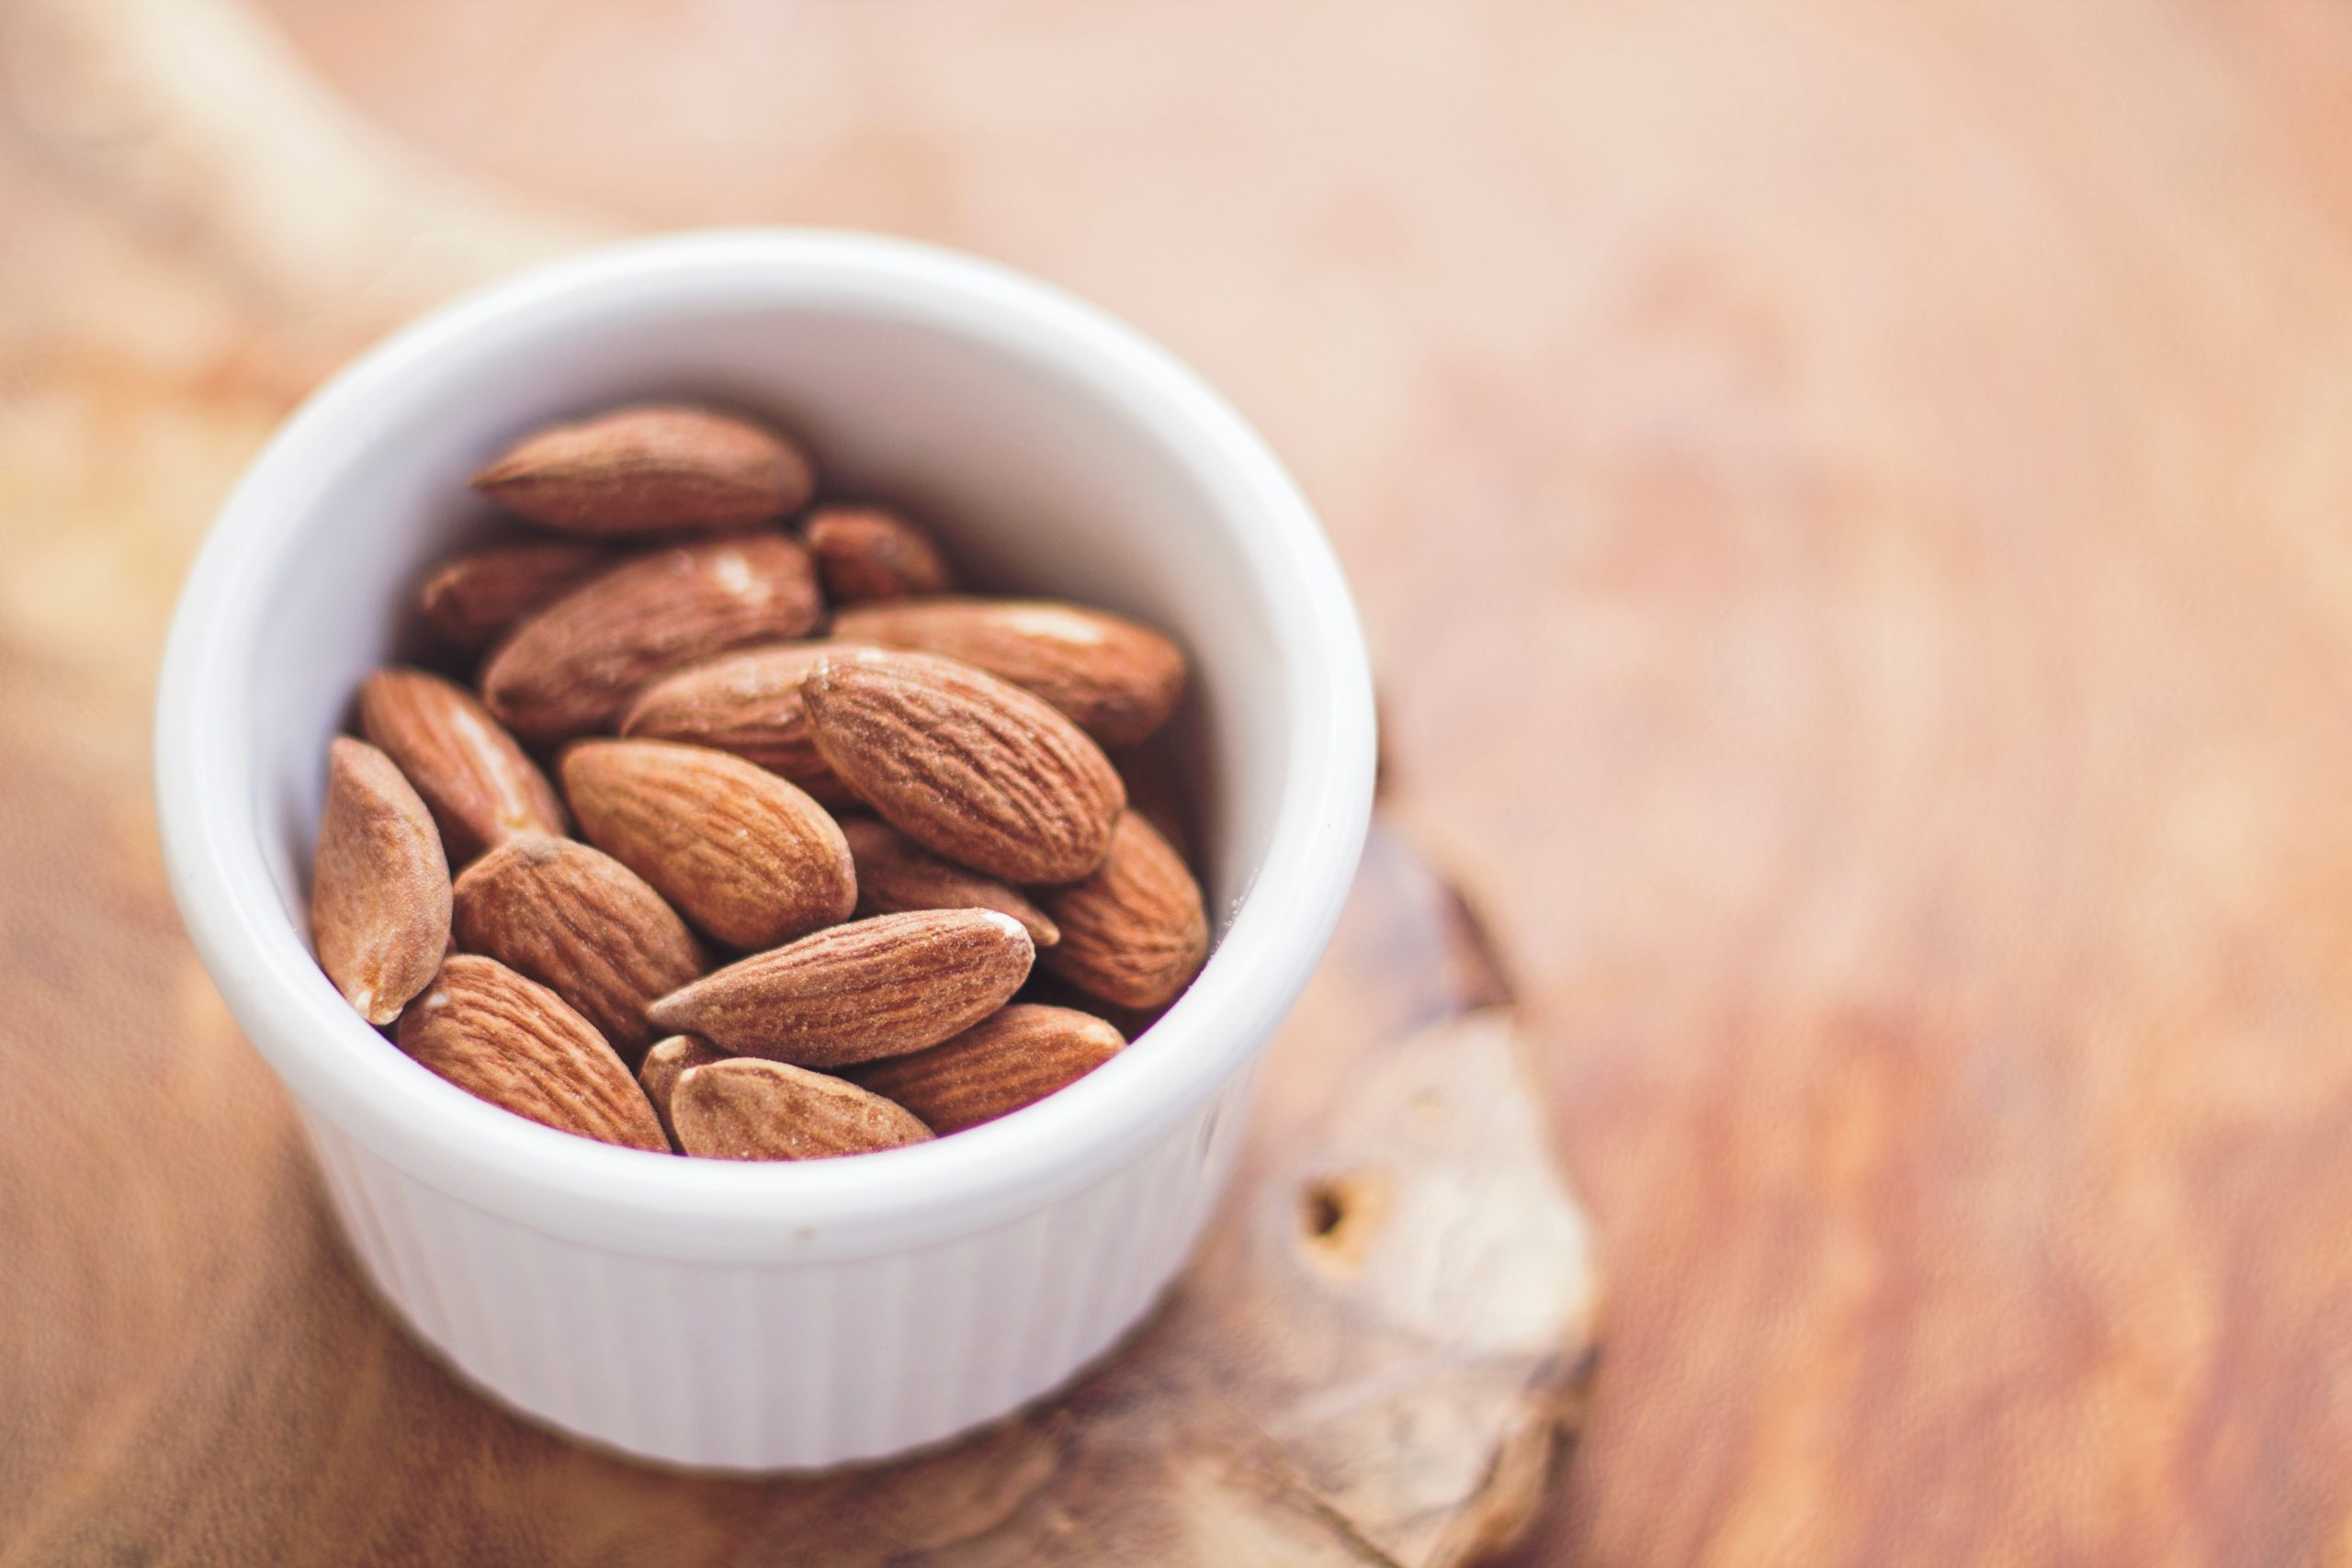 Picture of a small bowl of almonds